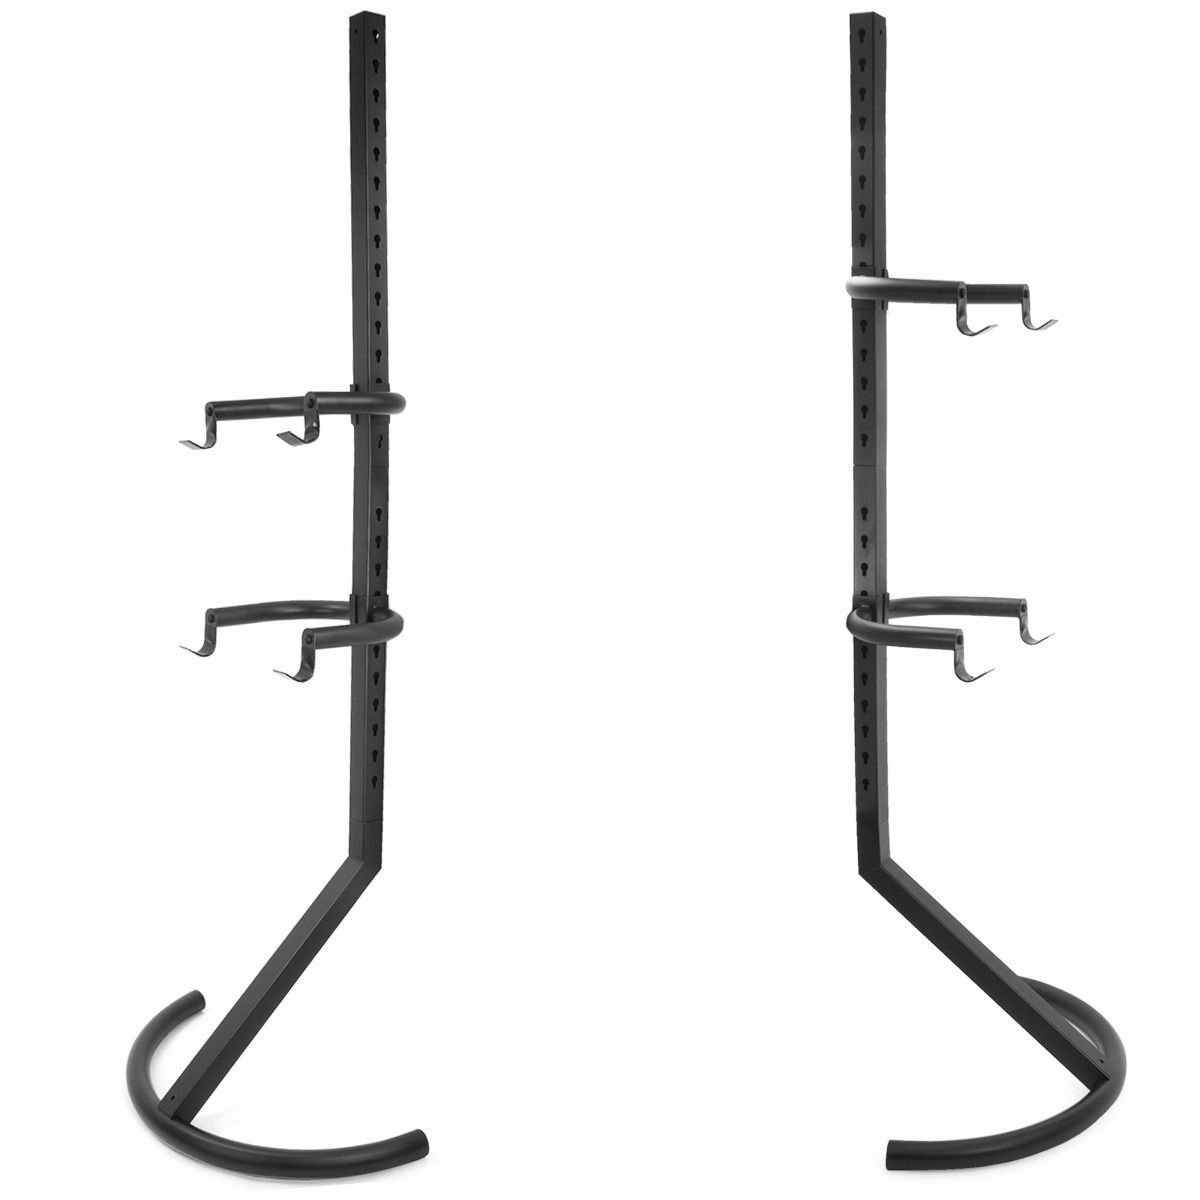 allgoodsdelight365 Gravity 2 Bike rack Stand Bicycle Rack Storage Or Display Holds Two Bicycles